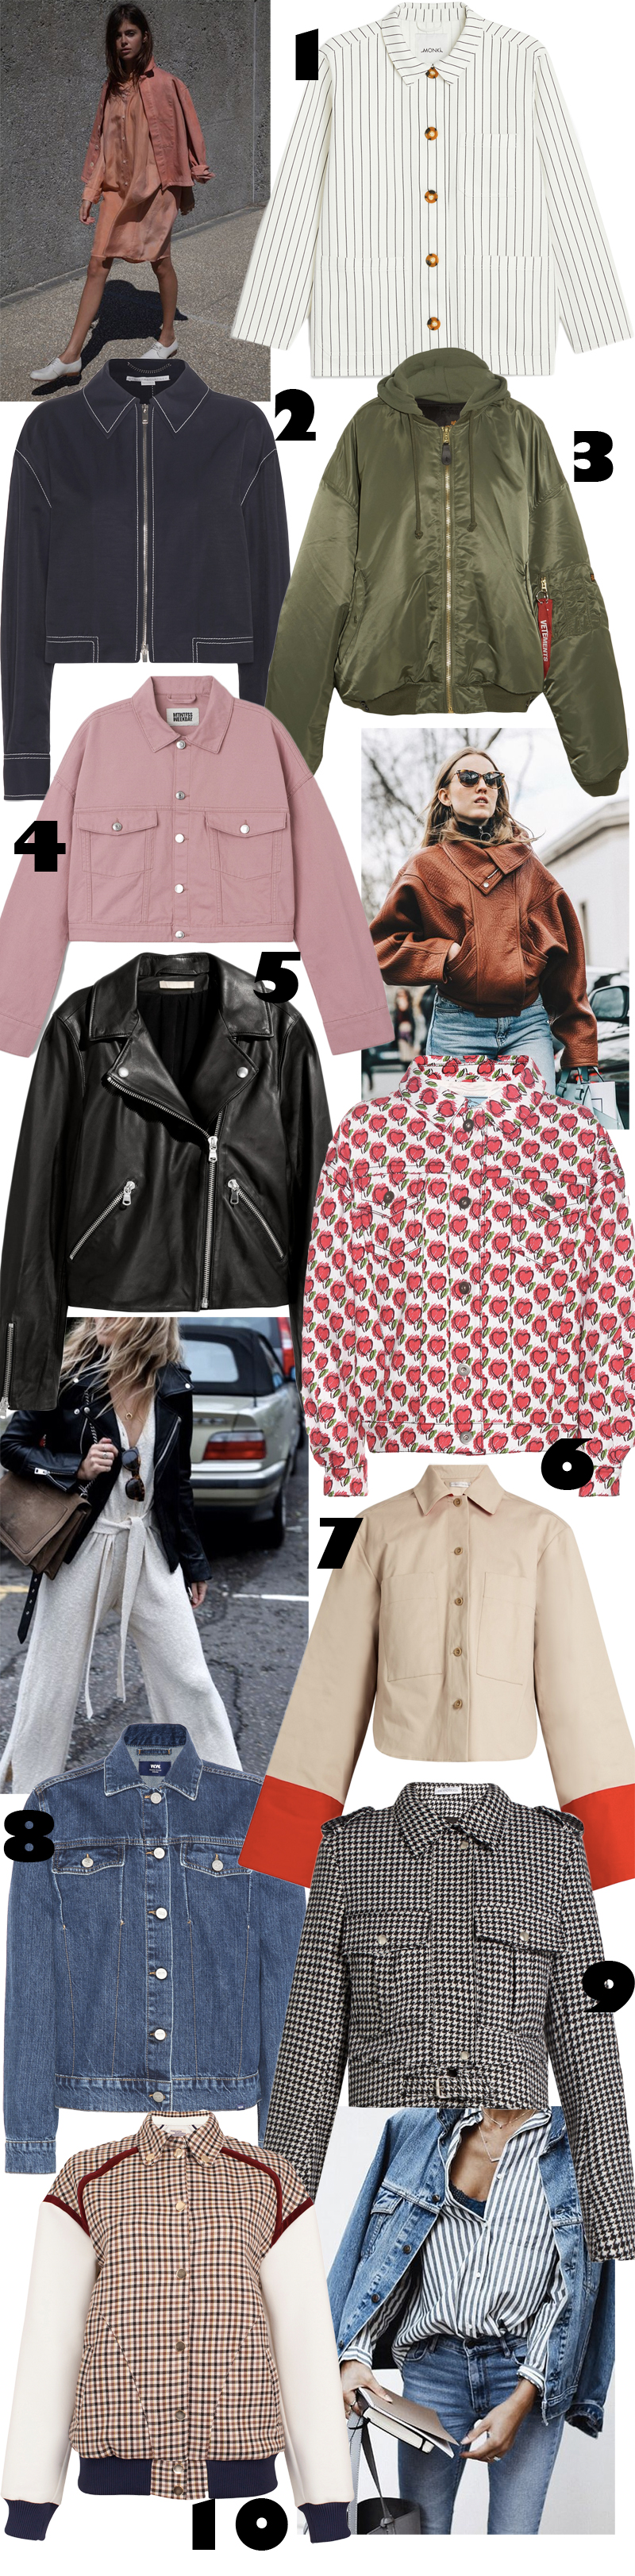 Eyes on: Spring Jackets